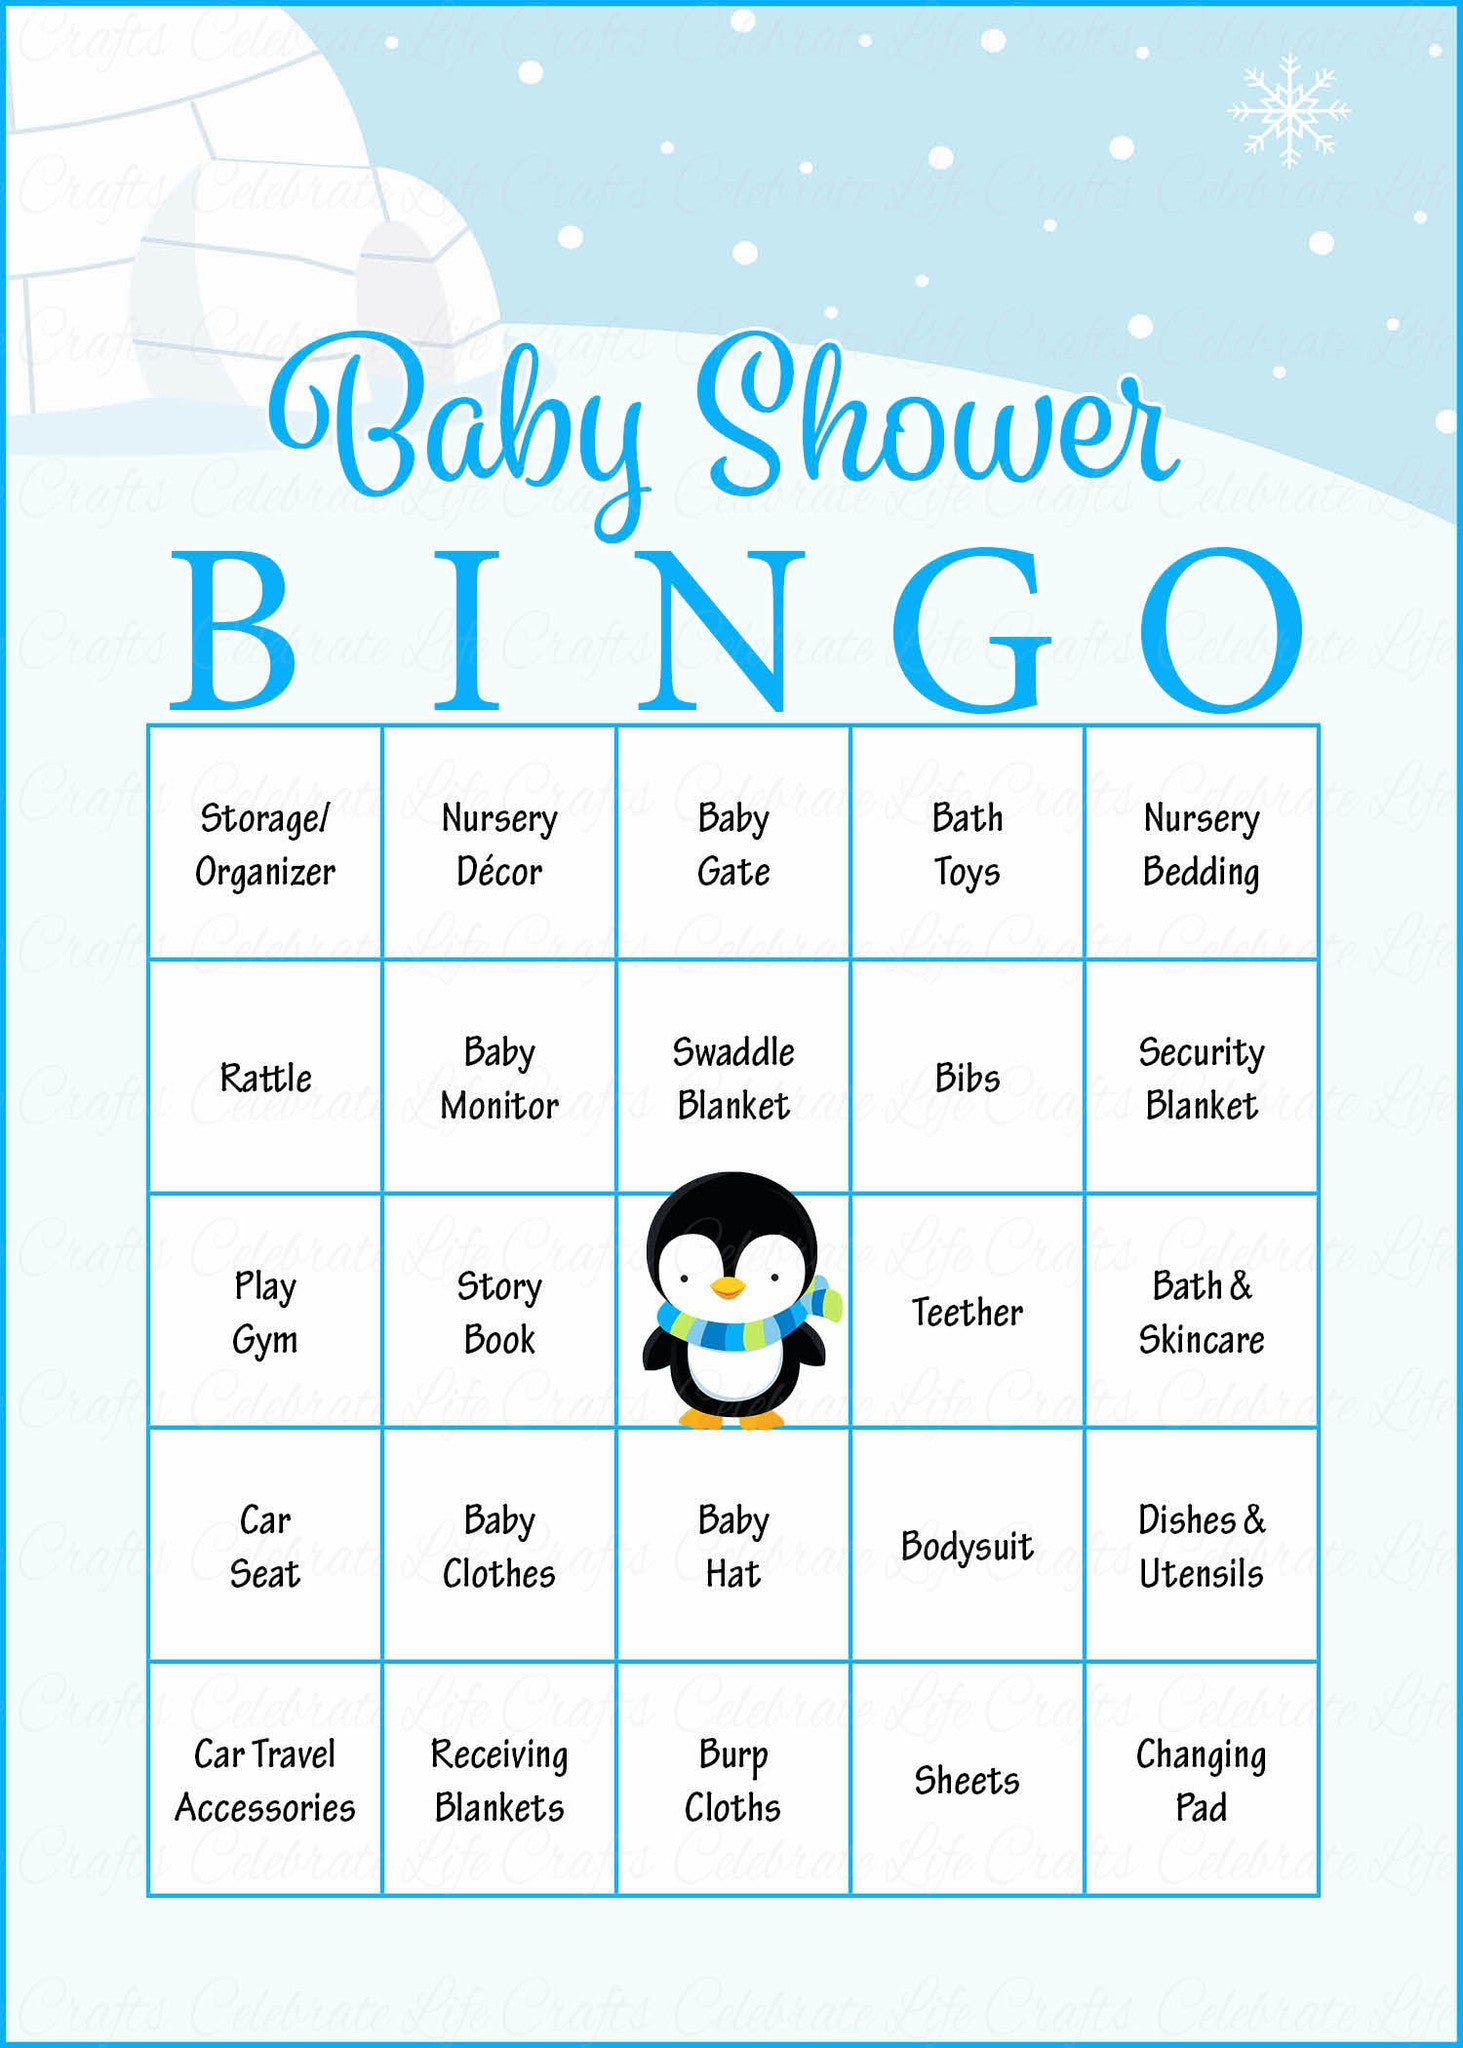 image regarding Baby Bingo Printable known as Wintertime Child Bingo Playing cards - Printable Down load - Prefilled - Child Shower Match for Boy - Blue Penguin